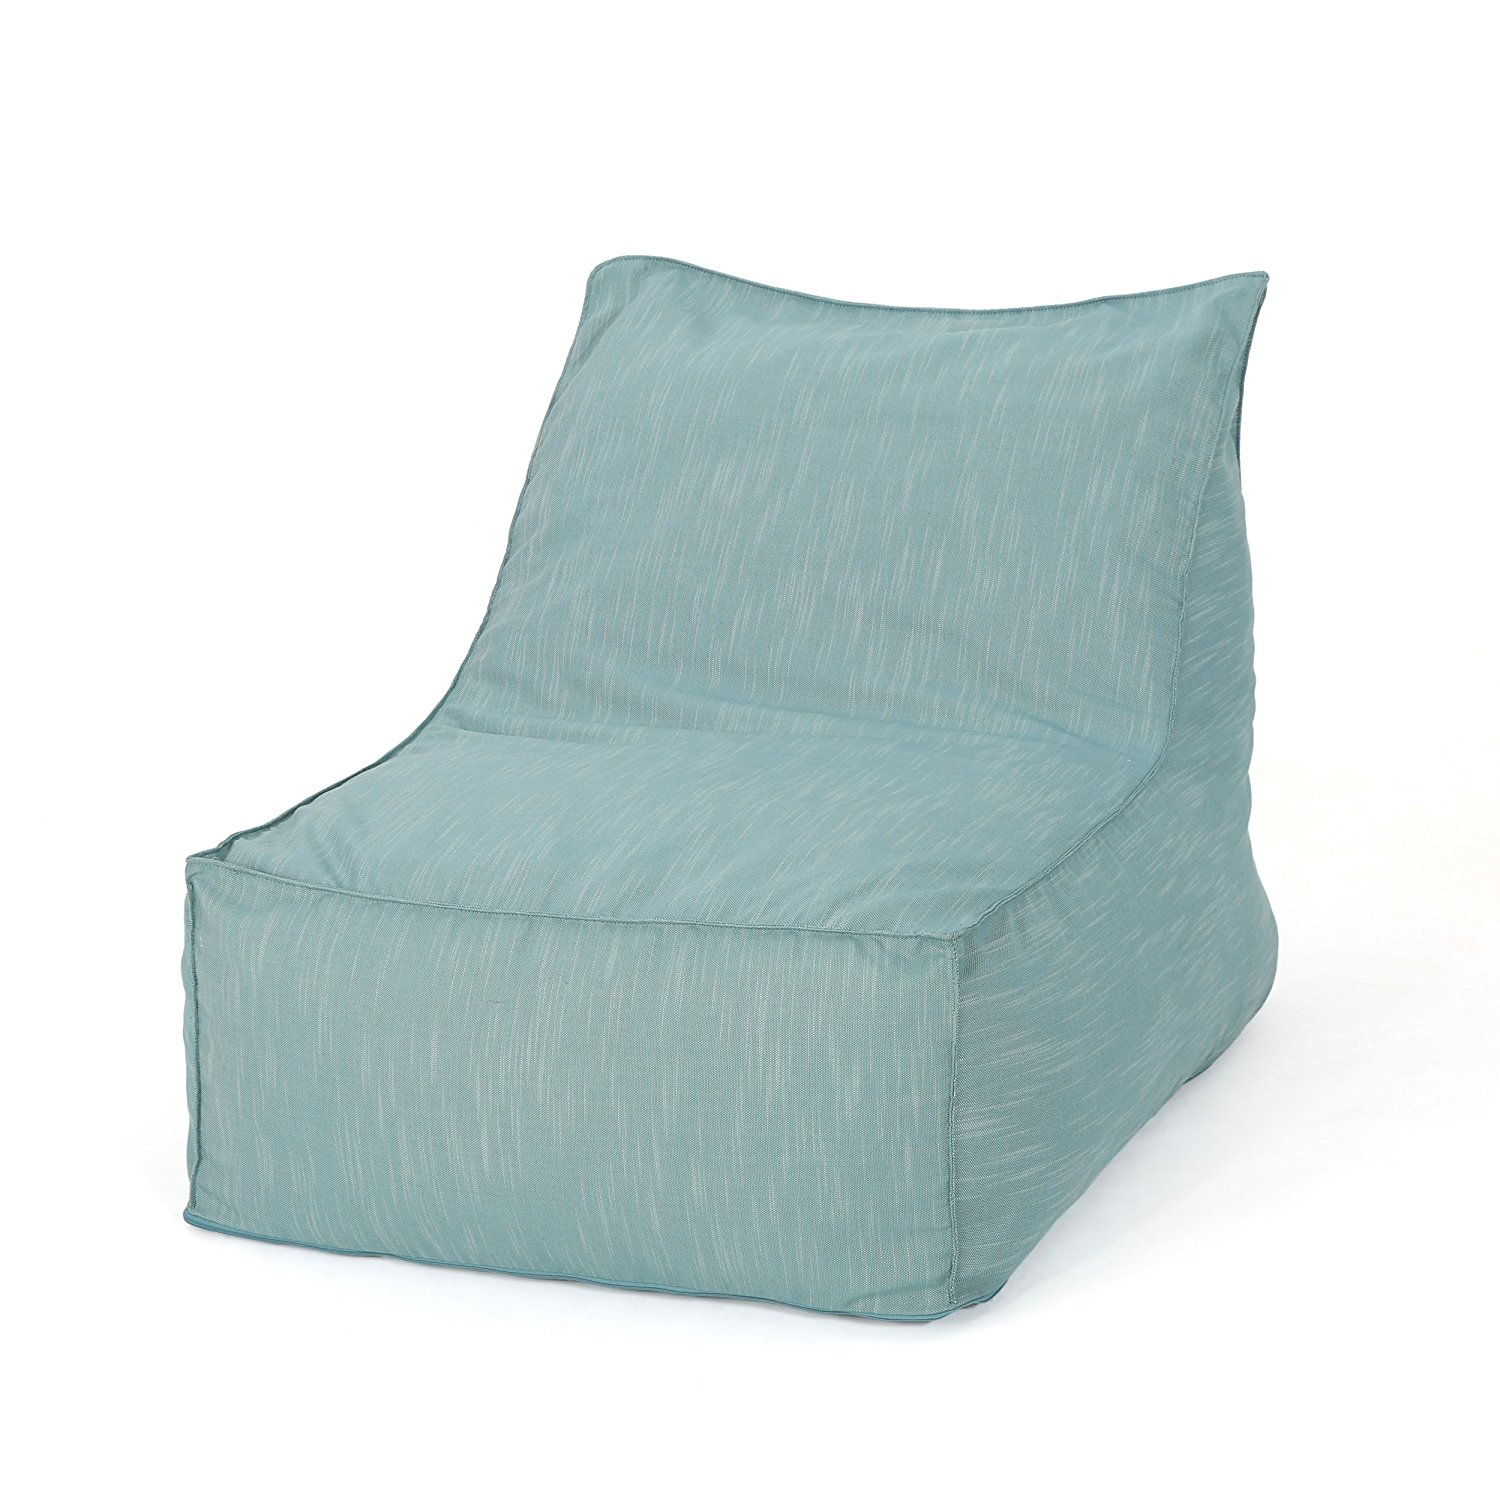 Cool Cheap Teal Bean Bag Find Teal Bean Bag Deals On Line At Evergreenethics Interior Chair Design Evergreenethicsorg